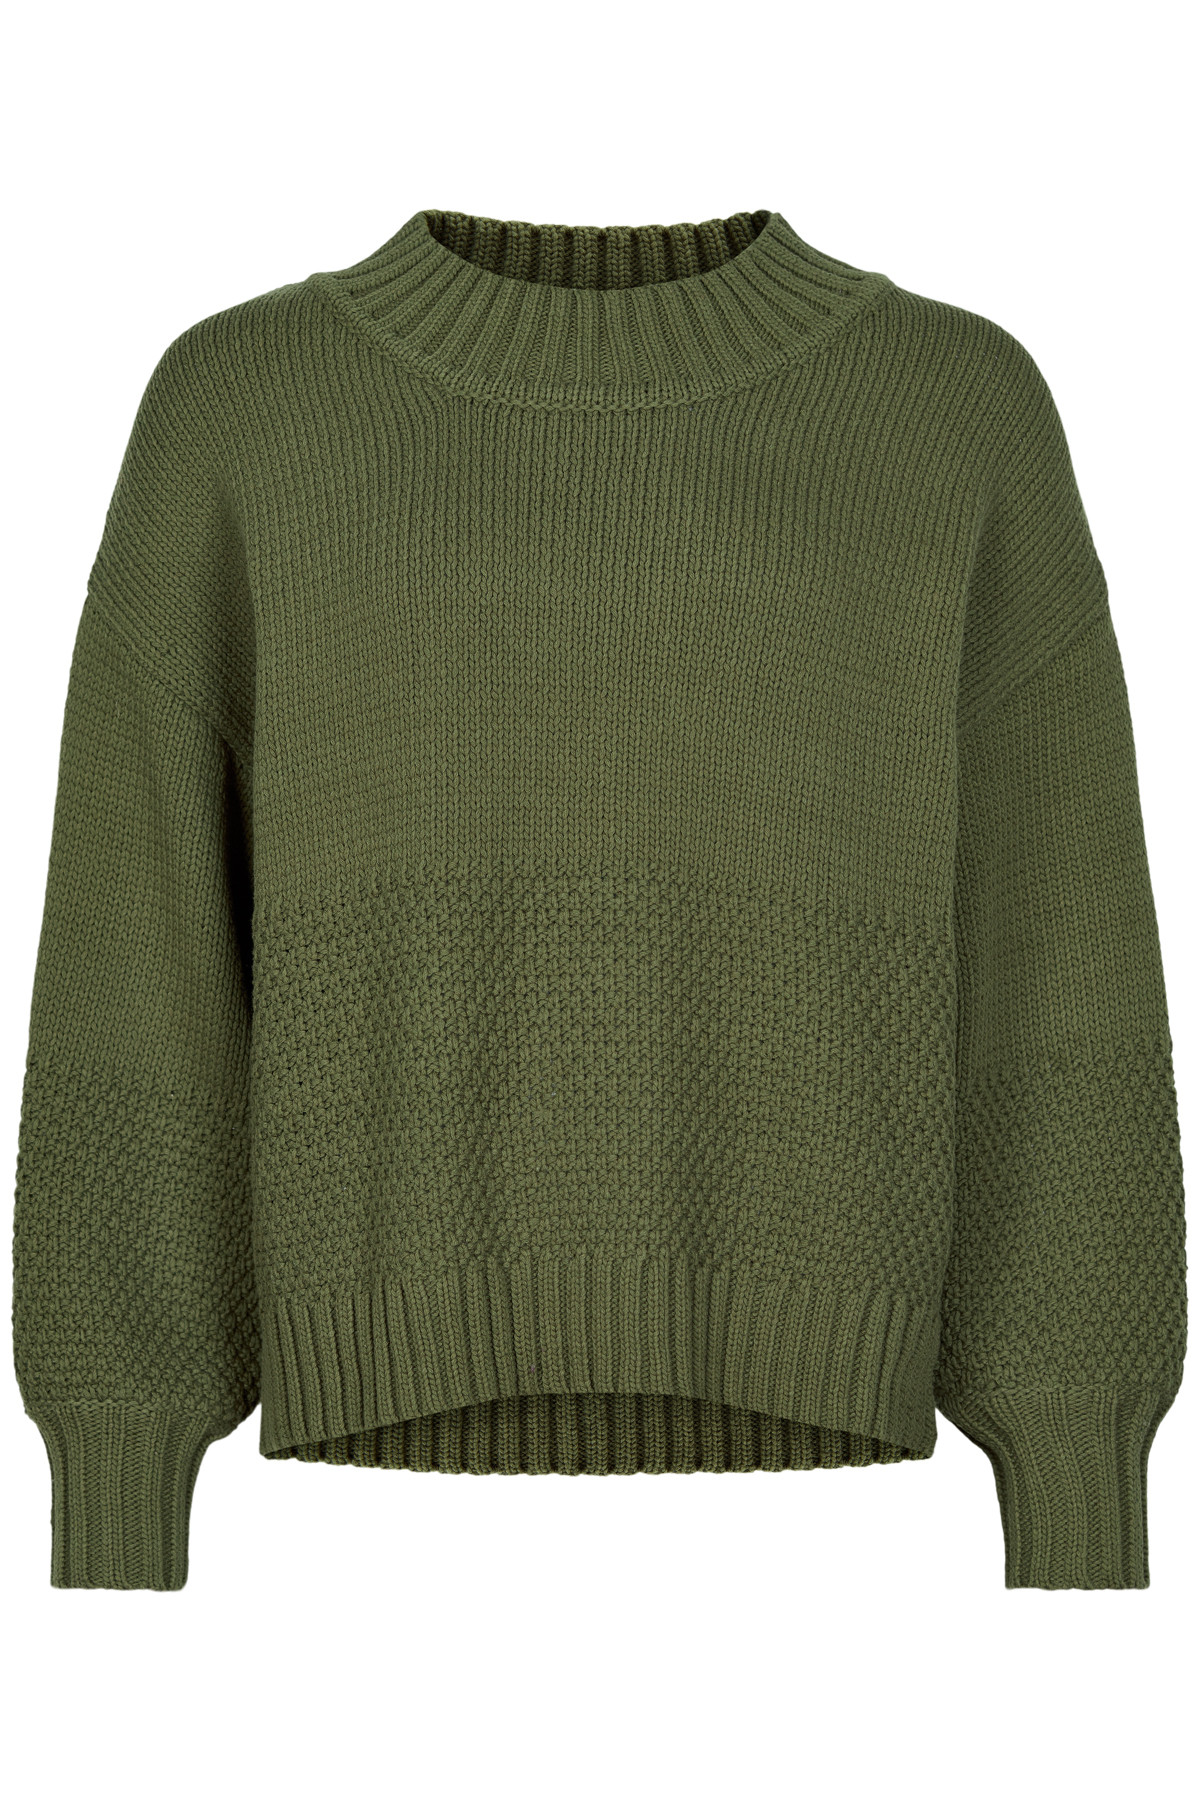 Image of   AND LESS ALANIESE PULLOVER 5120203 I (Ivy Green, XS)